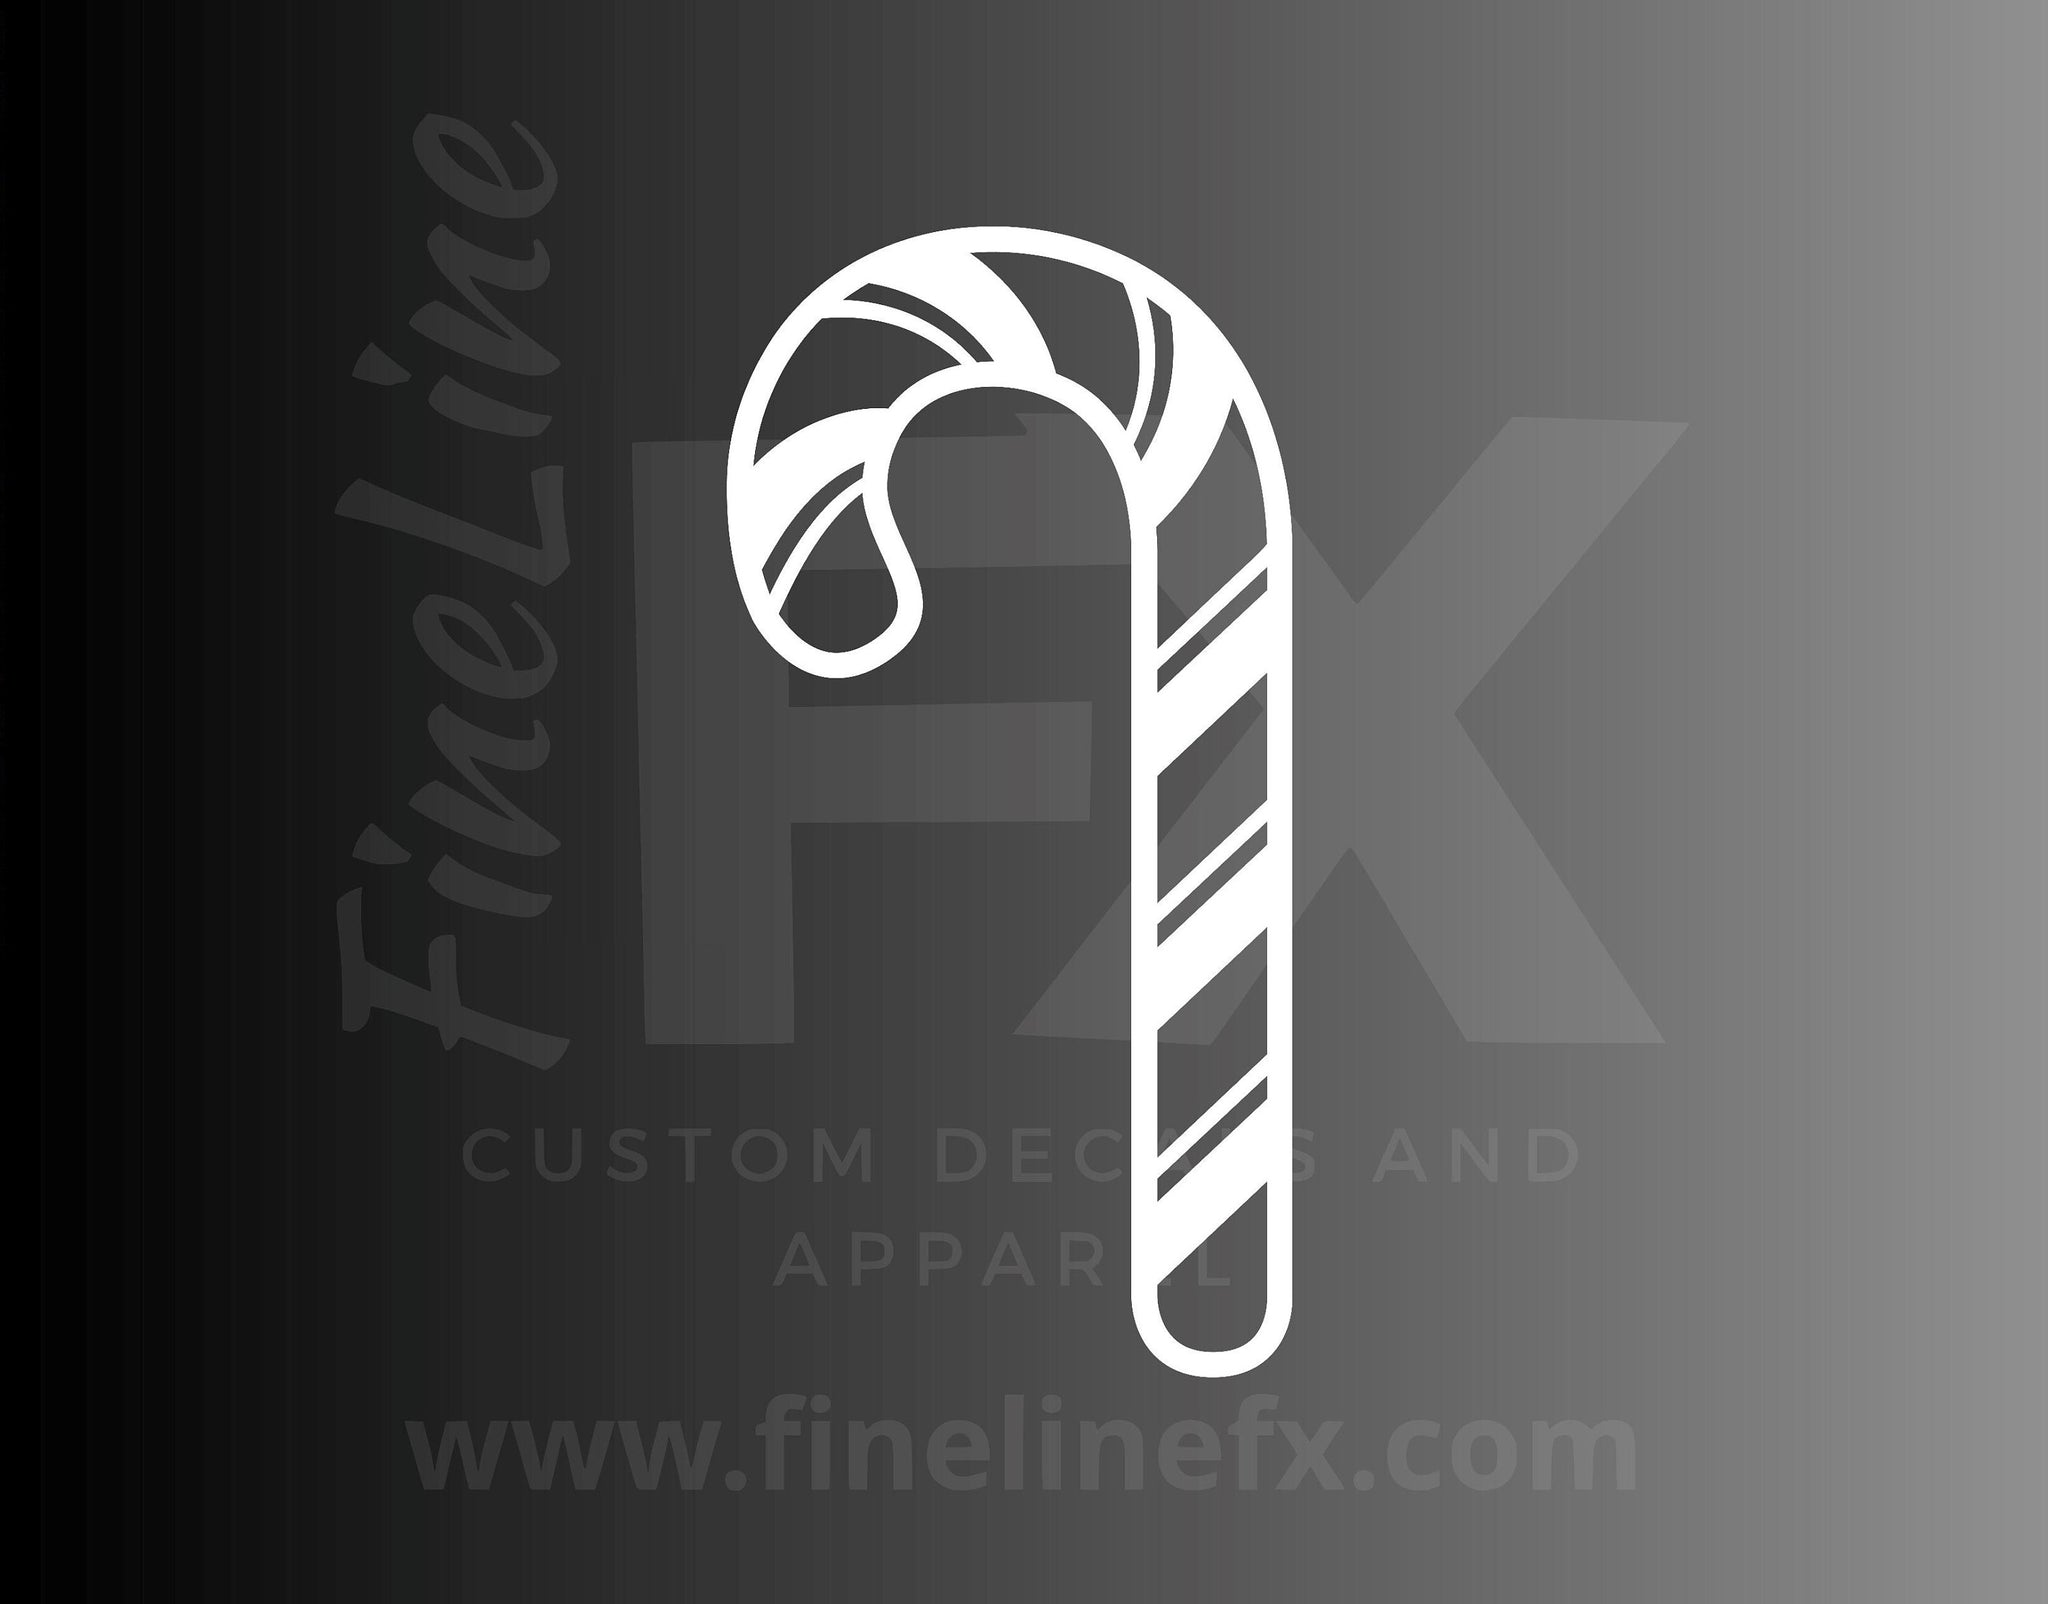 Candy Cane Die Cut Vinyl Decal Sticker